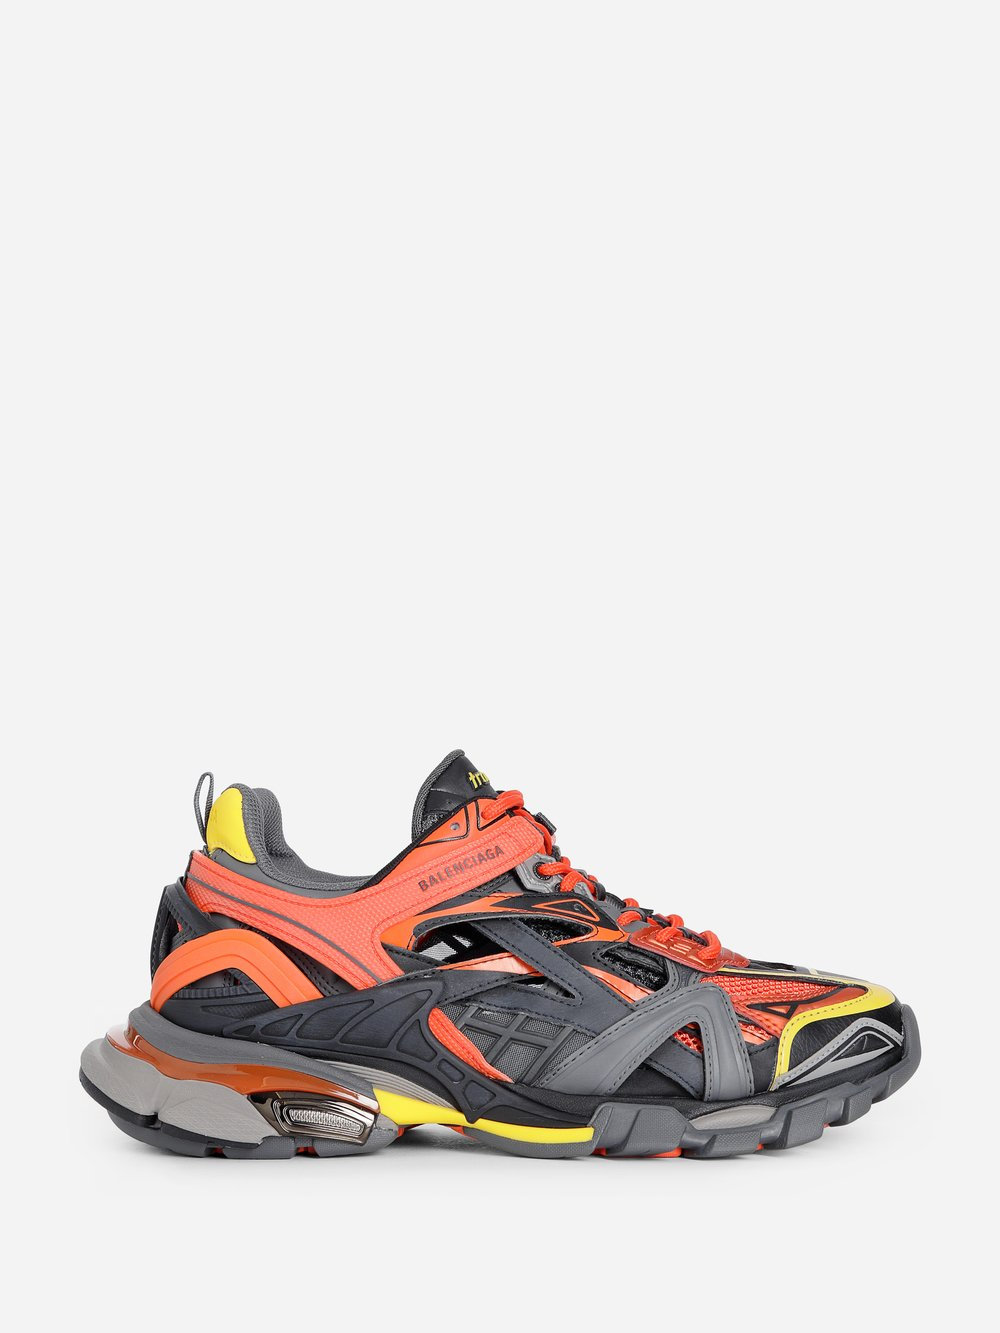 best supplier hot sales brand new Balenciaga Sneakers 568614W2GN1 7560